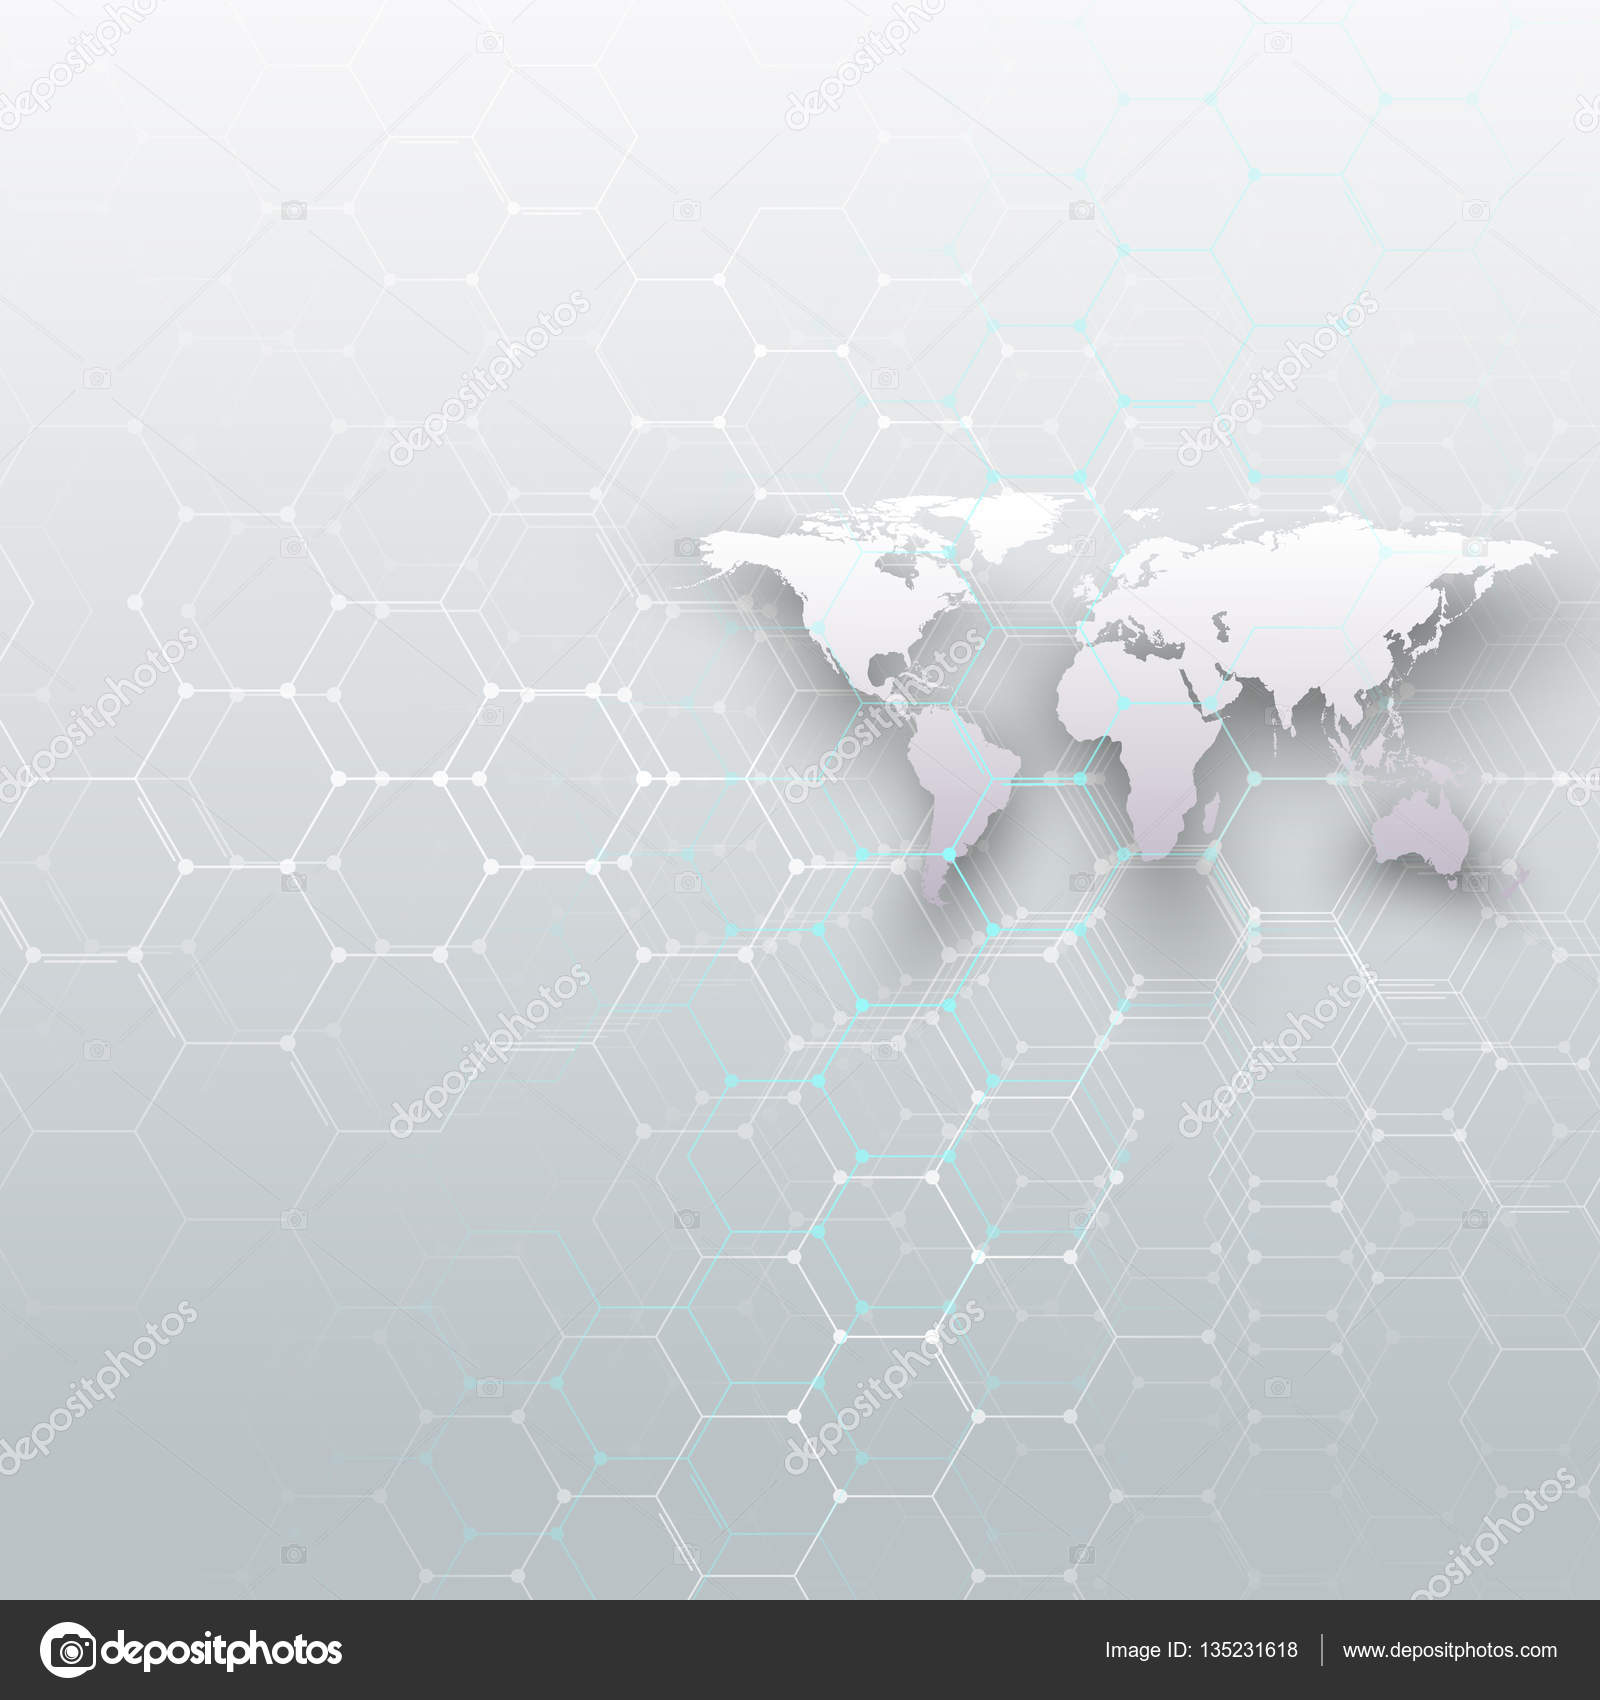 White world map connecting lines and dots on gray color background white world map connecting lines and dots on gray color background chemistry pattern hexagonal molecule structure scientific research gumiabroncs Gallery